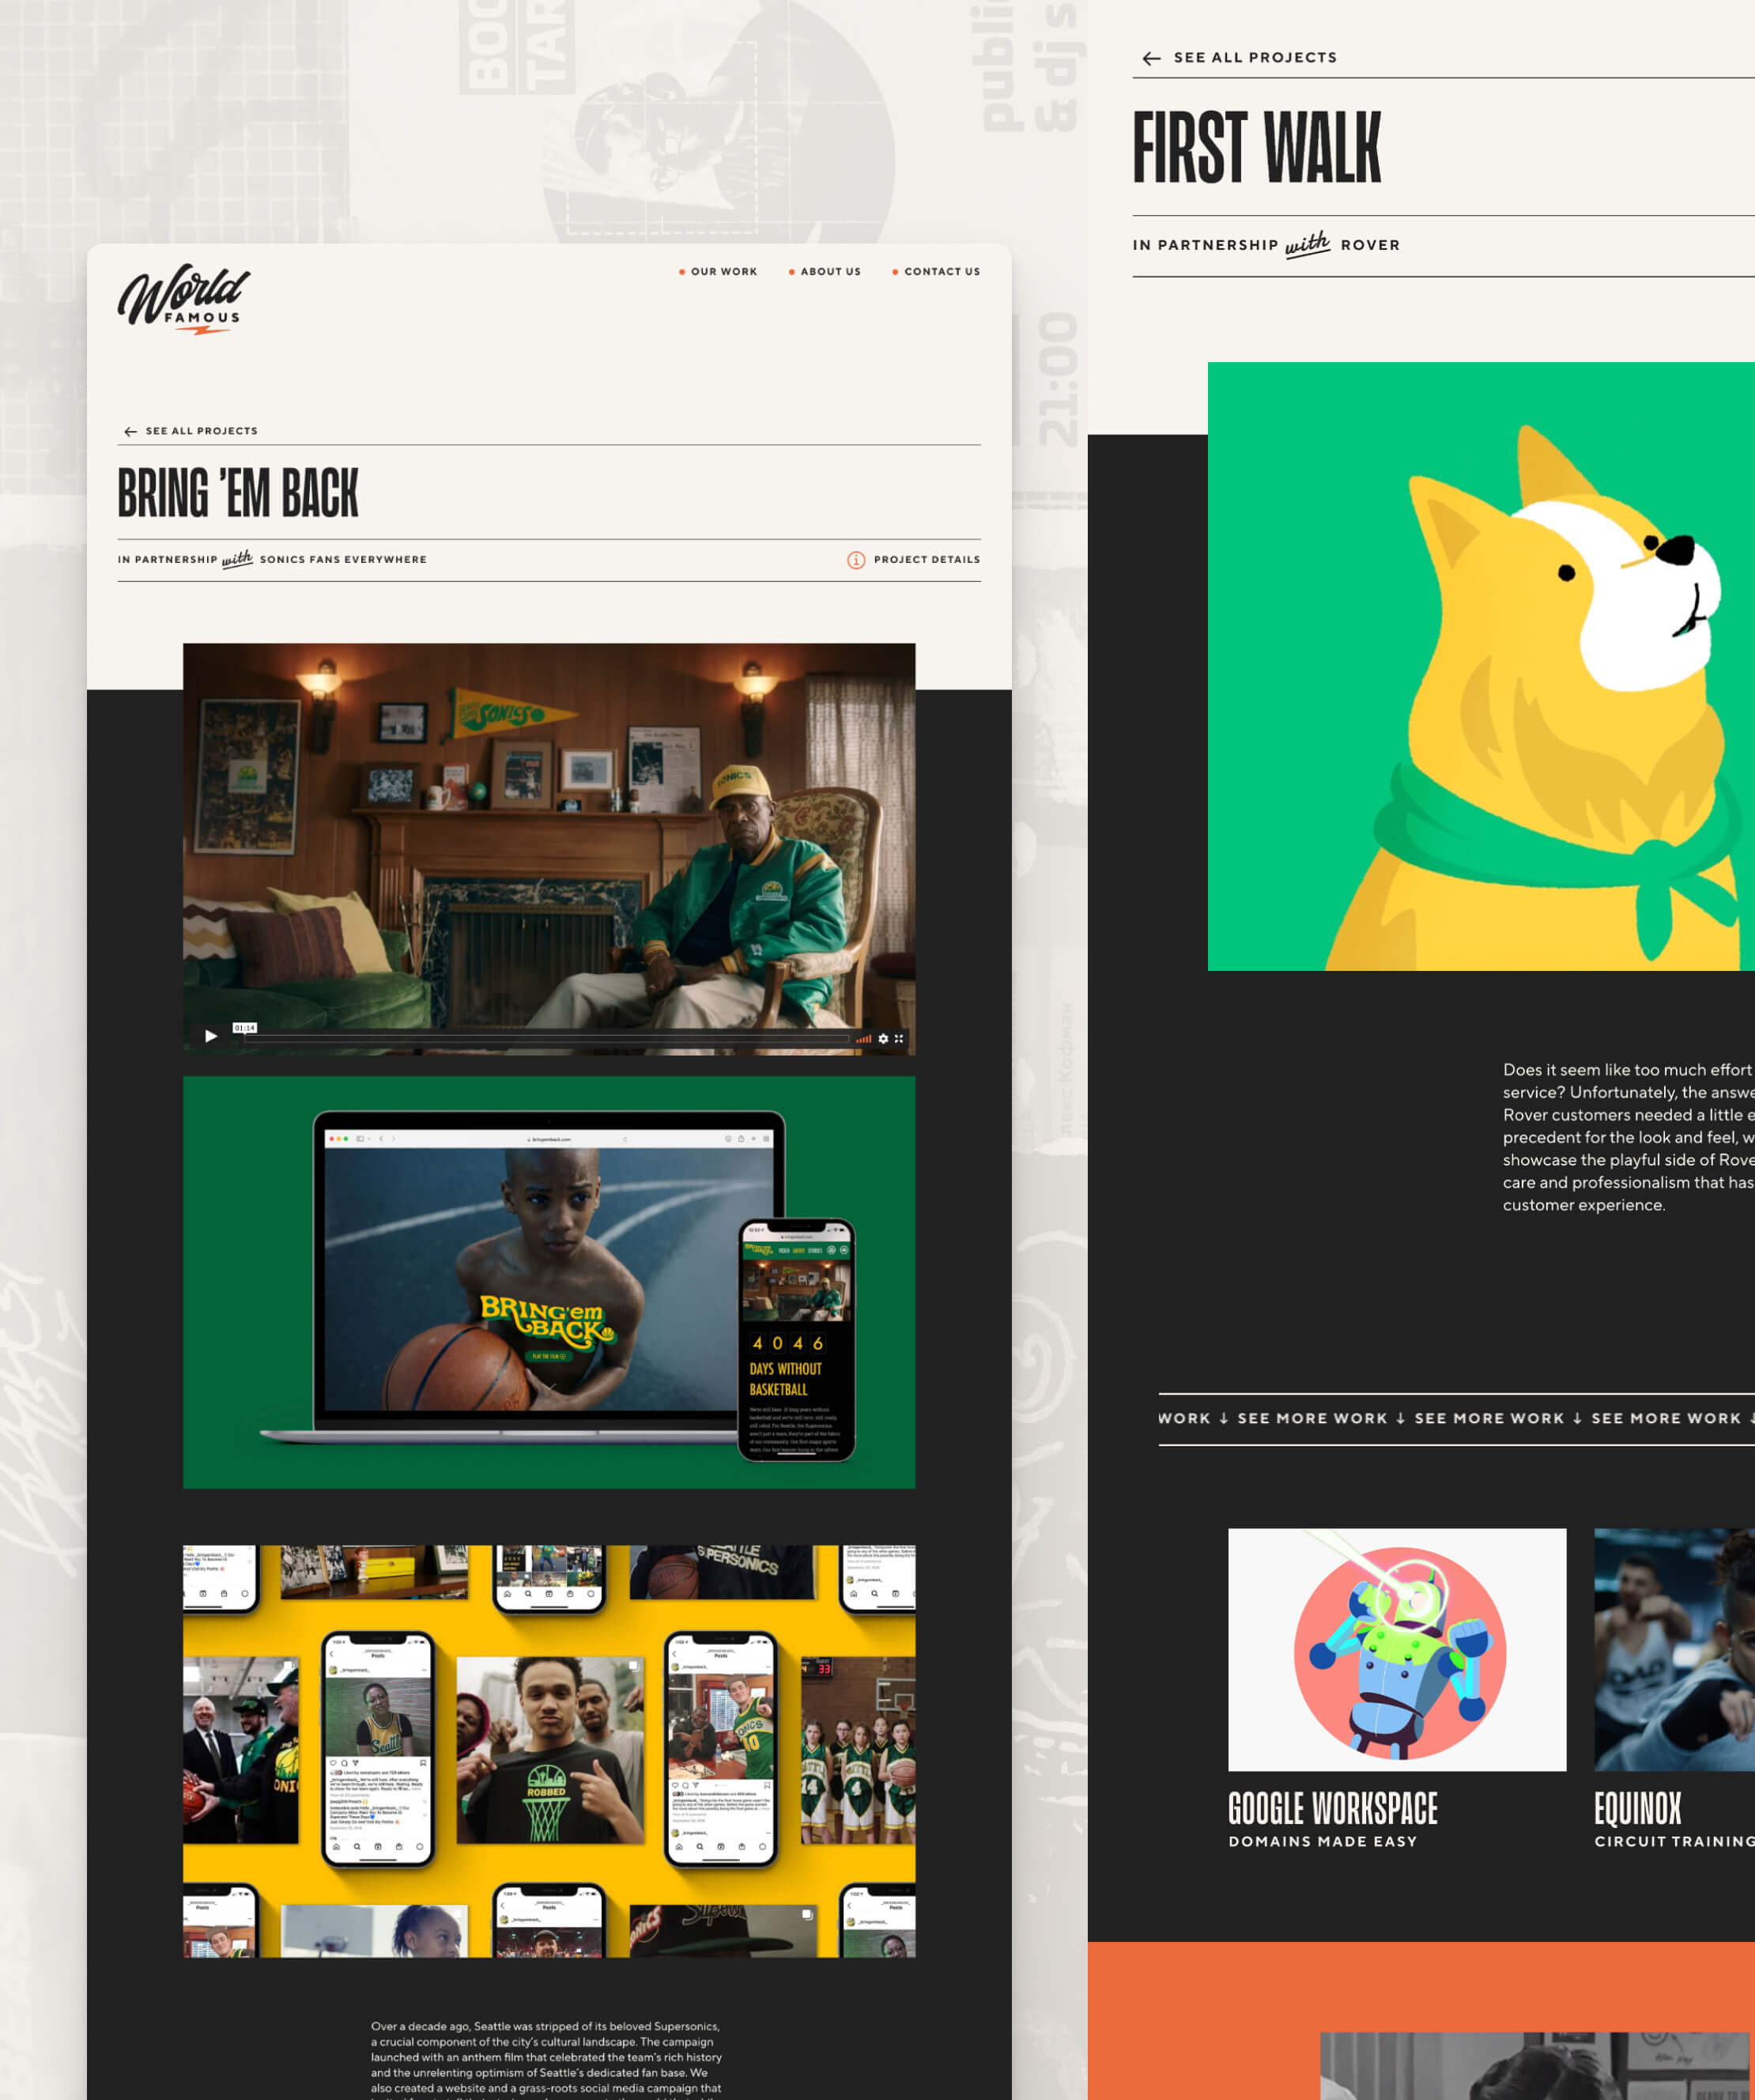 More screenshots of the pages from the World Famous website.